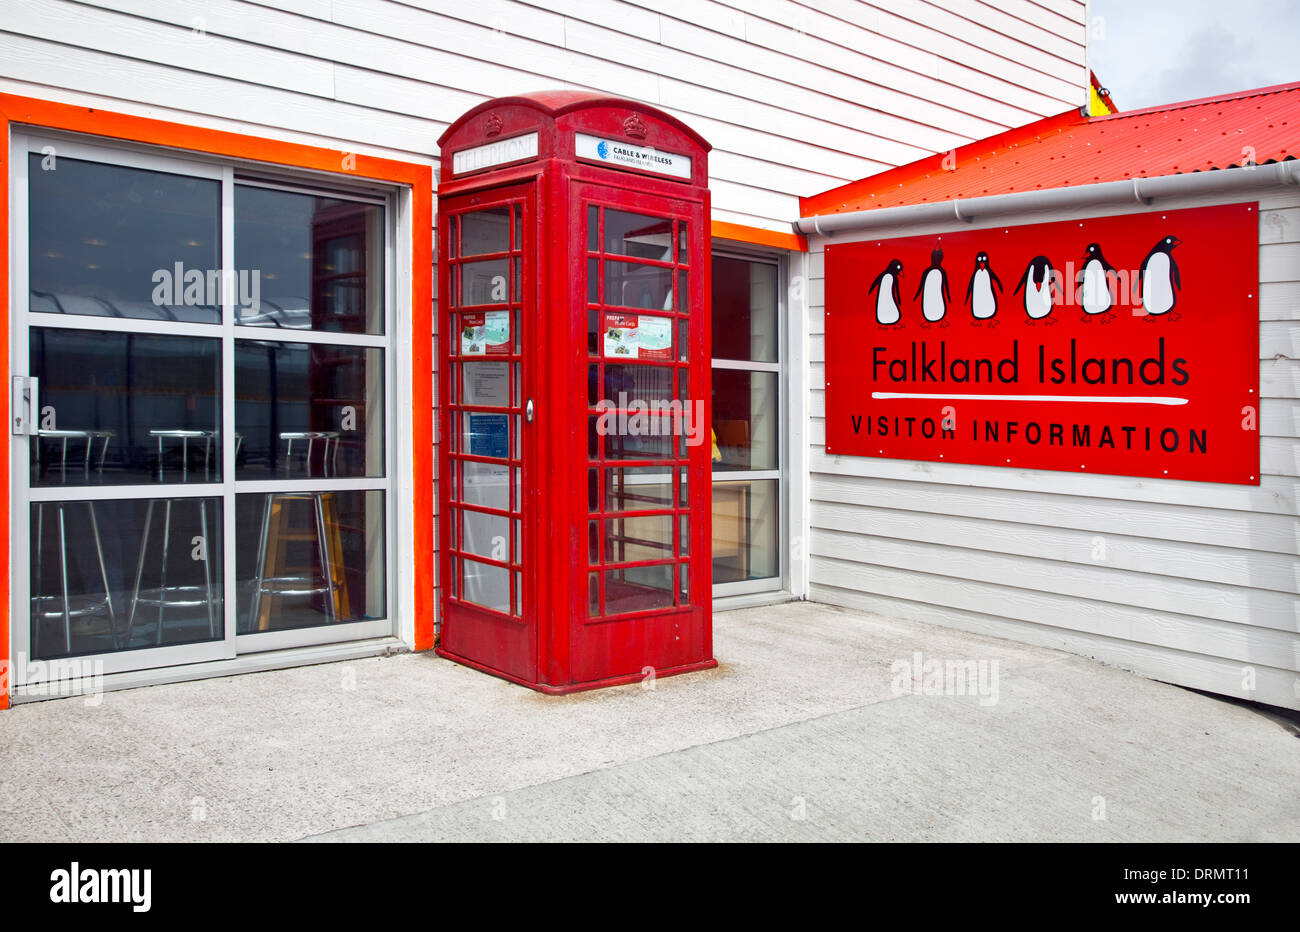 Traditional Red British Telephone Kiosk at the Visitor Information Centre, Stanley, Falkland Islands - Stock Image